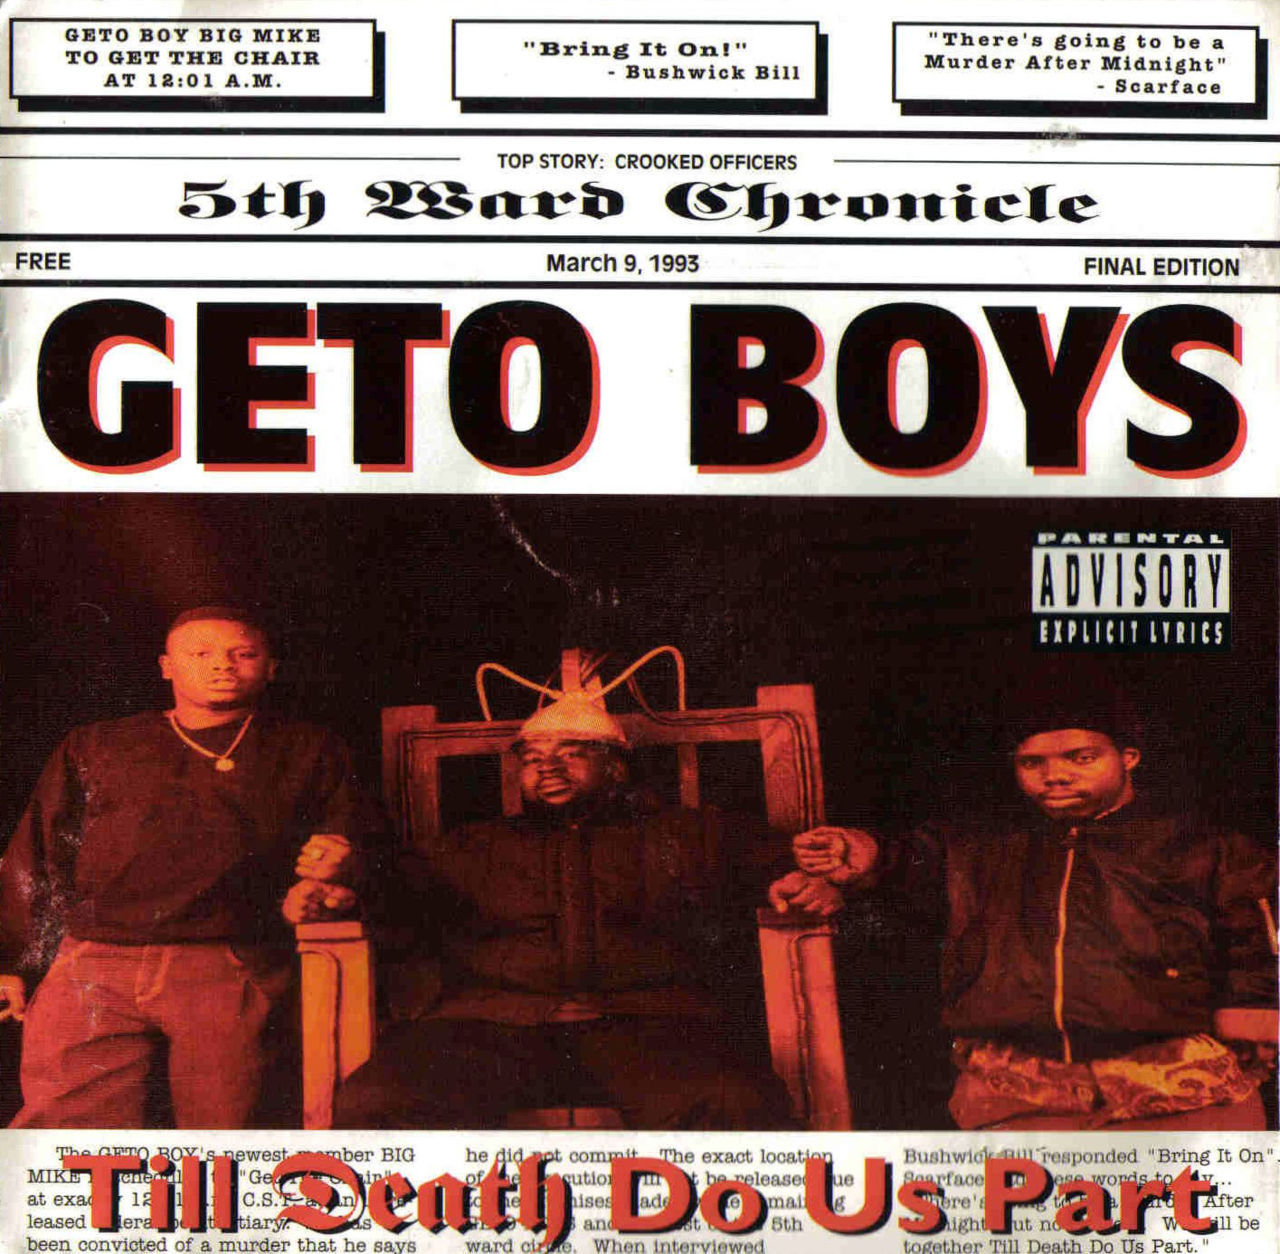 20 YEARS AGO TODAY |3/19/93| Geto Boys released their fifth studio album, Til Death Do Us Part, through Rap-A-Lot Records